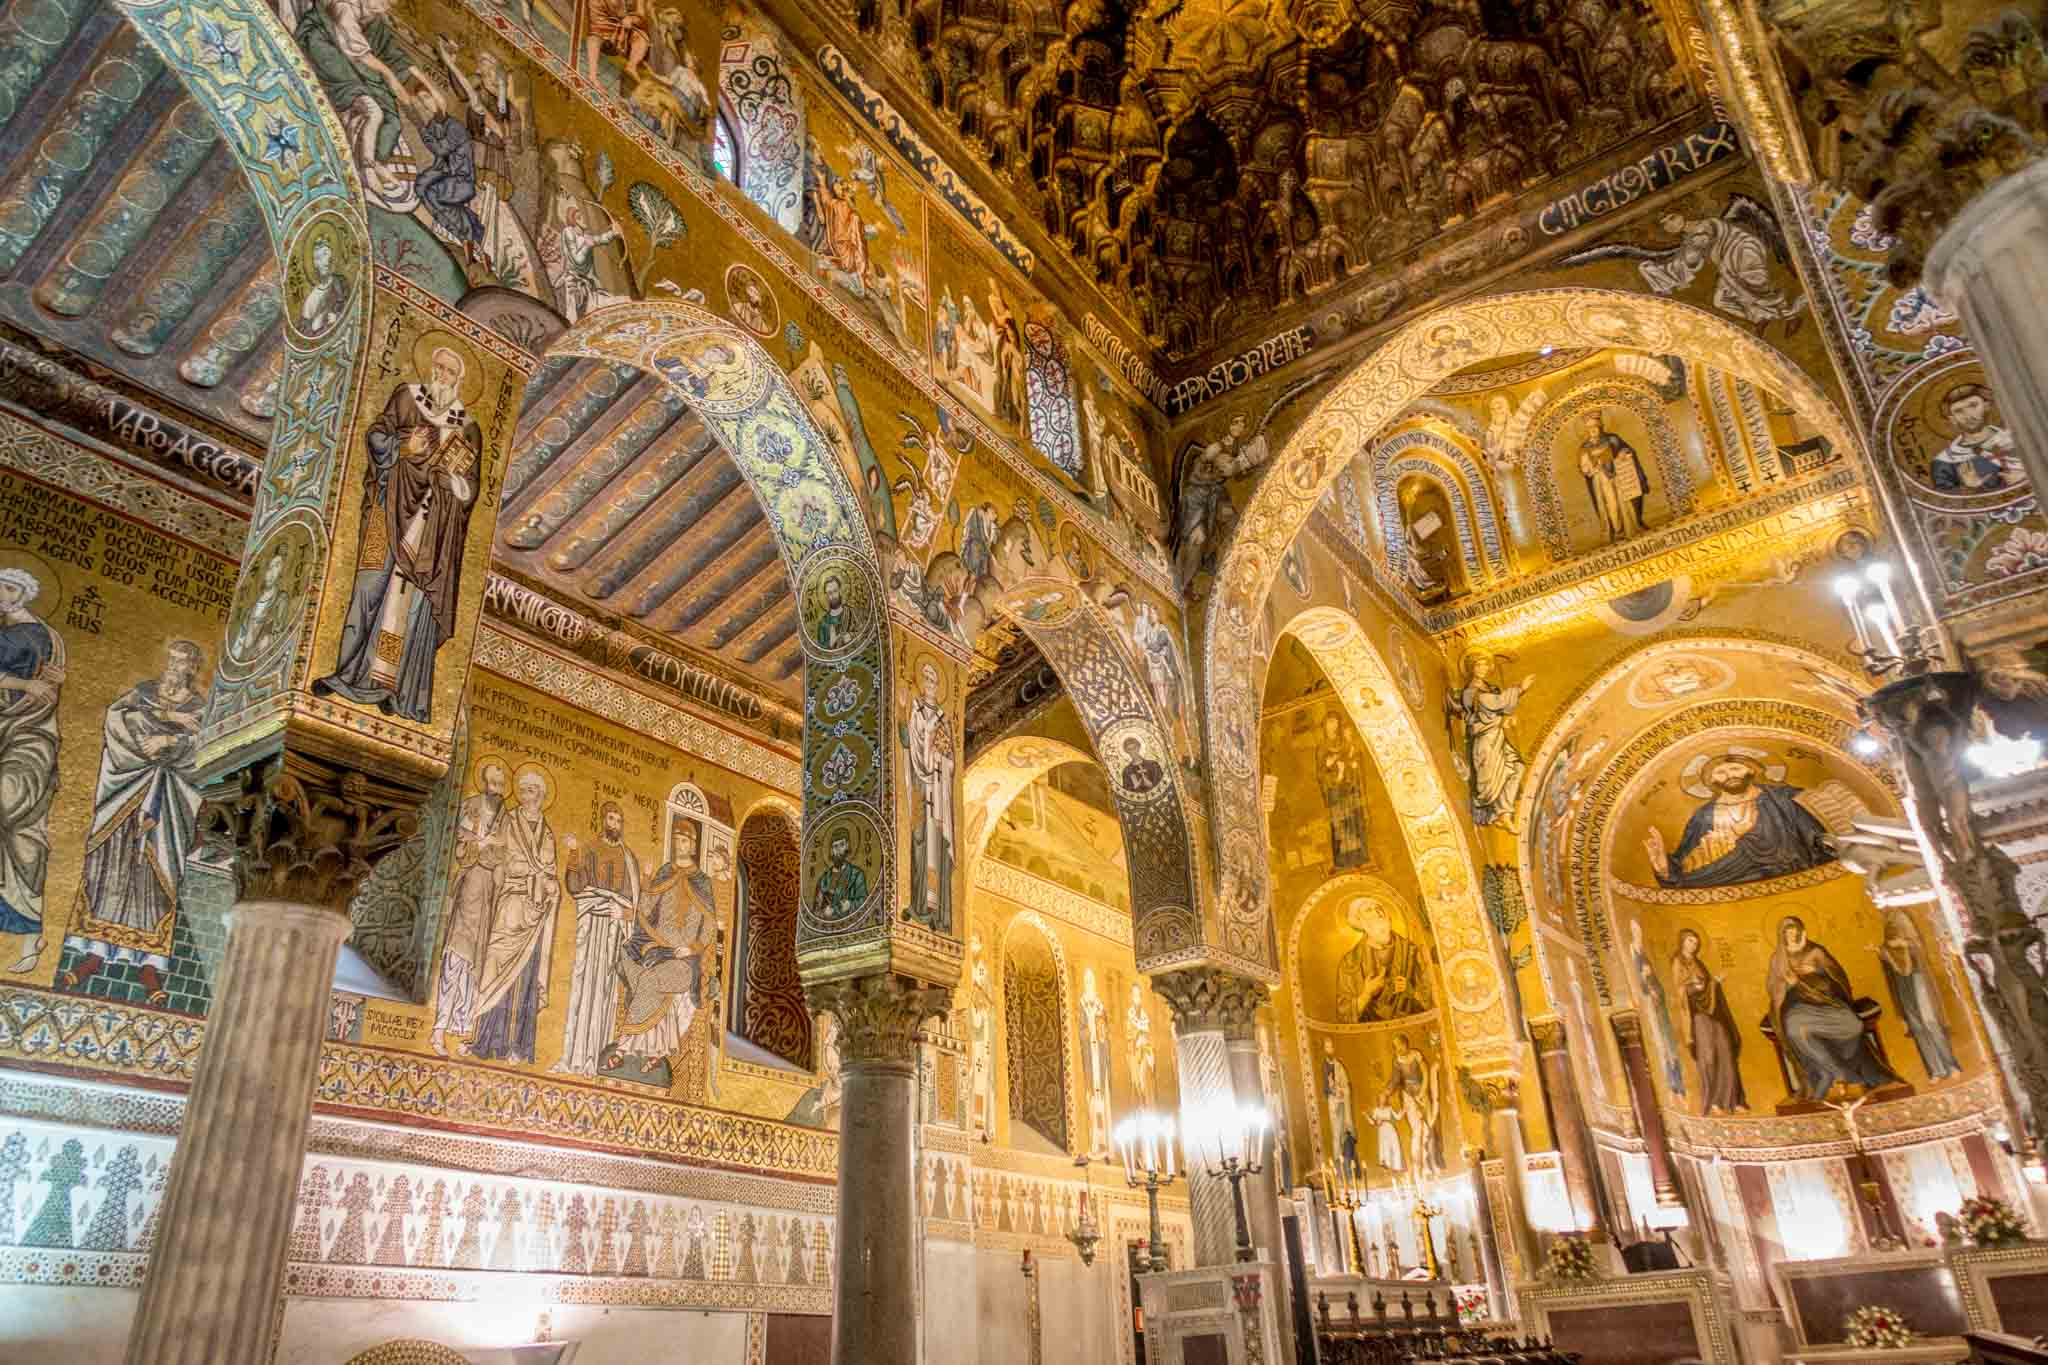 Interior of chapel covered in gold and tiled mosaics